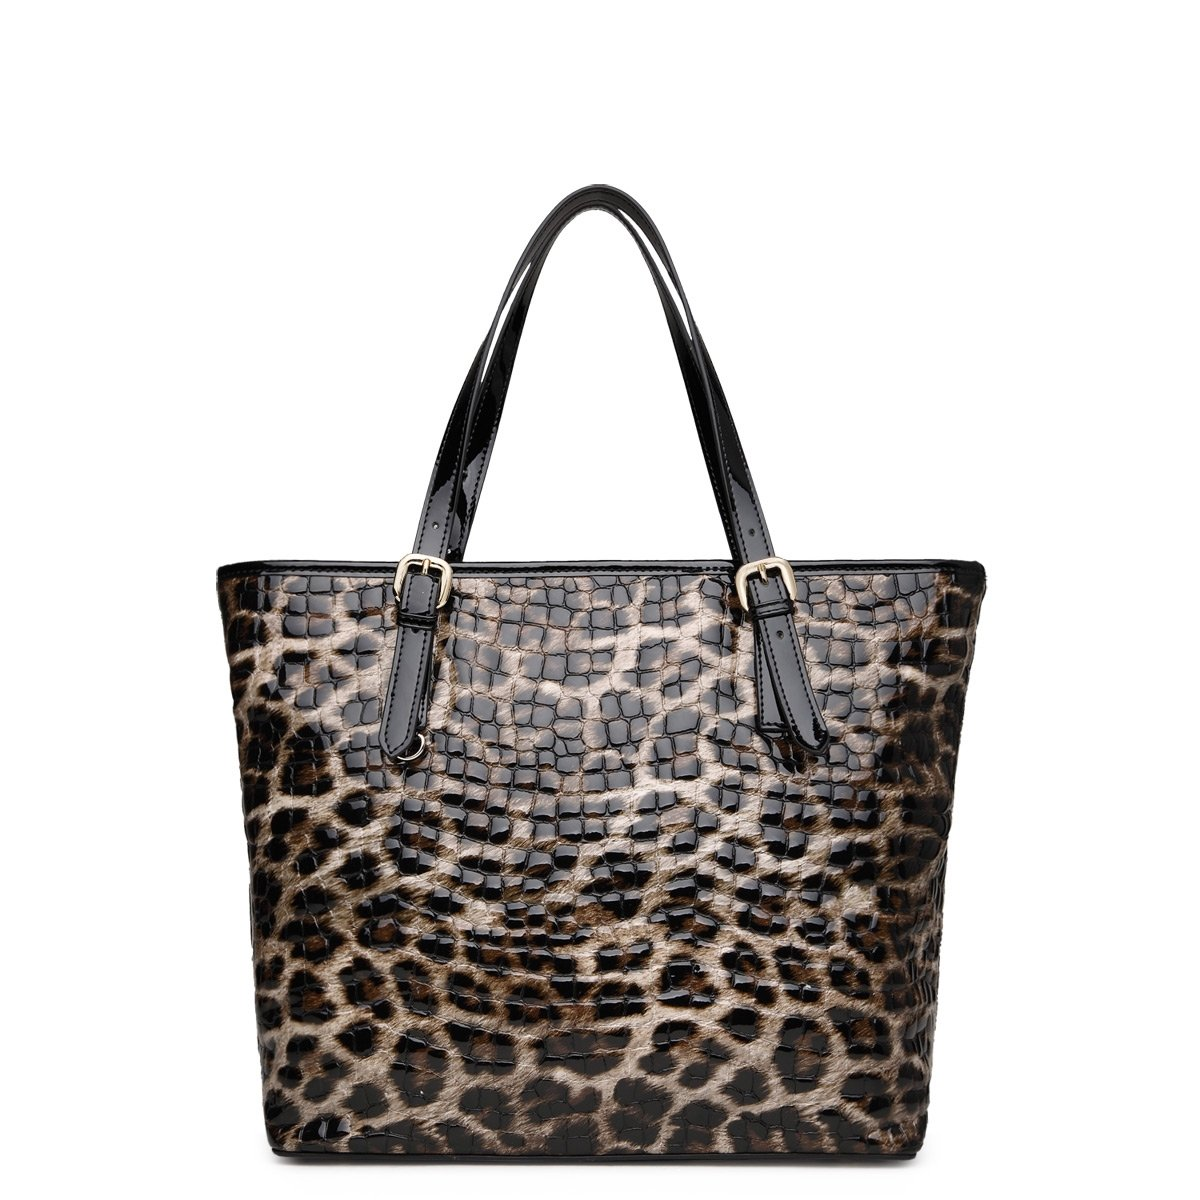 Chocolate Brown and Light Tan Cowhide Patent Leather Embossed Alligator Crocodile Leopard Print Vogue Boutique Casual Large Bucket Tote Bag